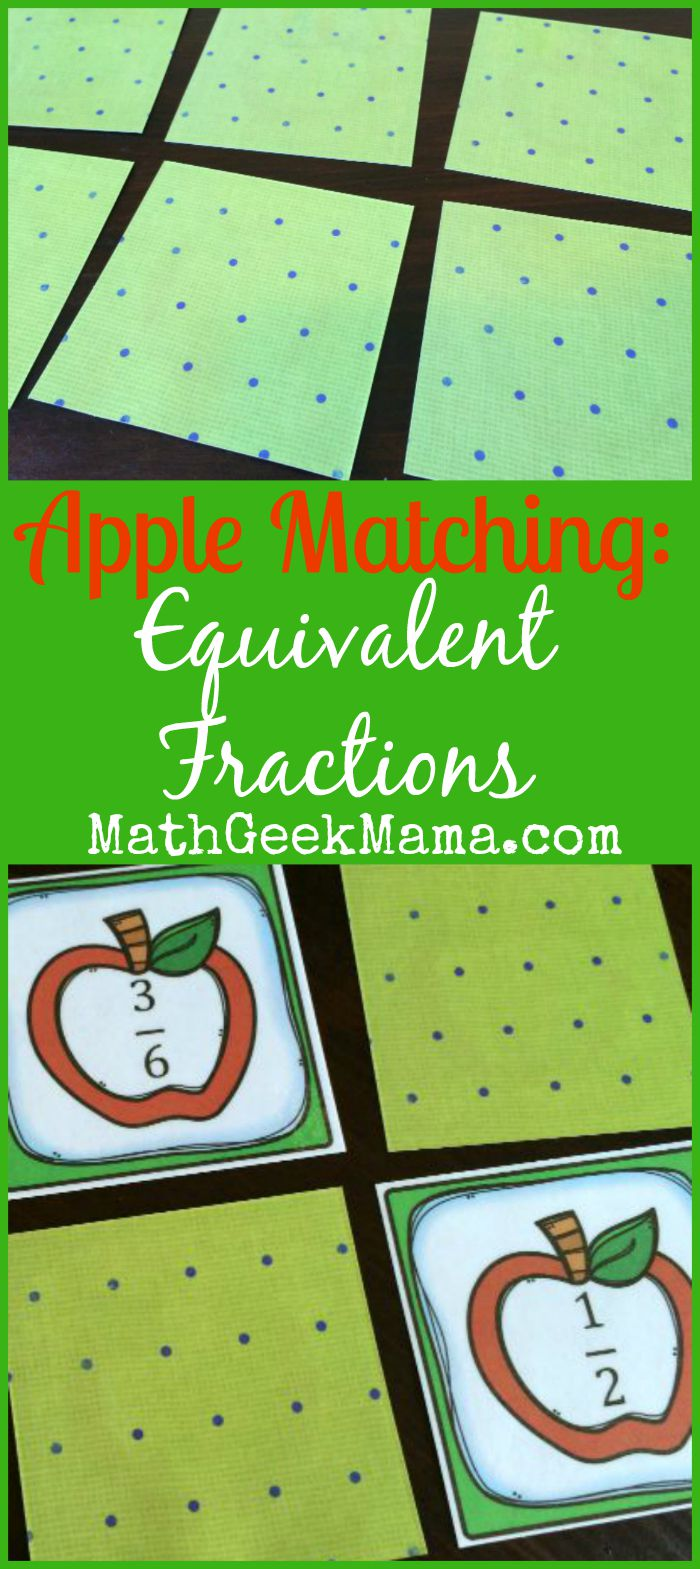 This fun and low prep game is a great way to let your kids practice recognizing equivalent fractions! Simply print and play independently or with a friend!